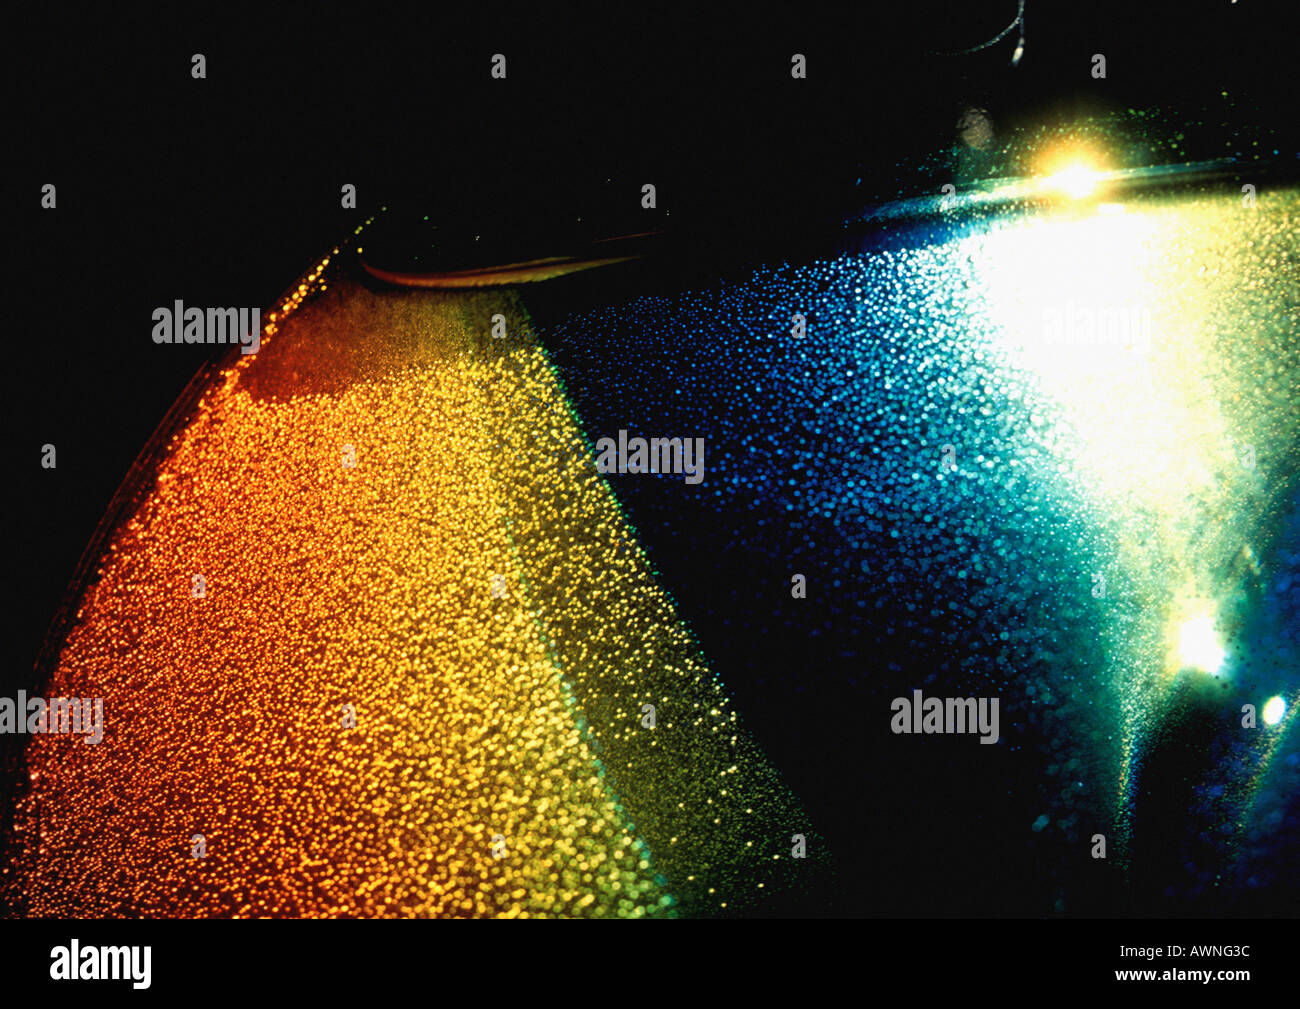 Textured light effect, yellows, blues and reds. - Stock Image